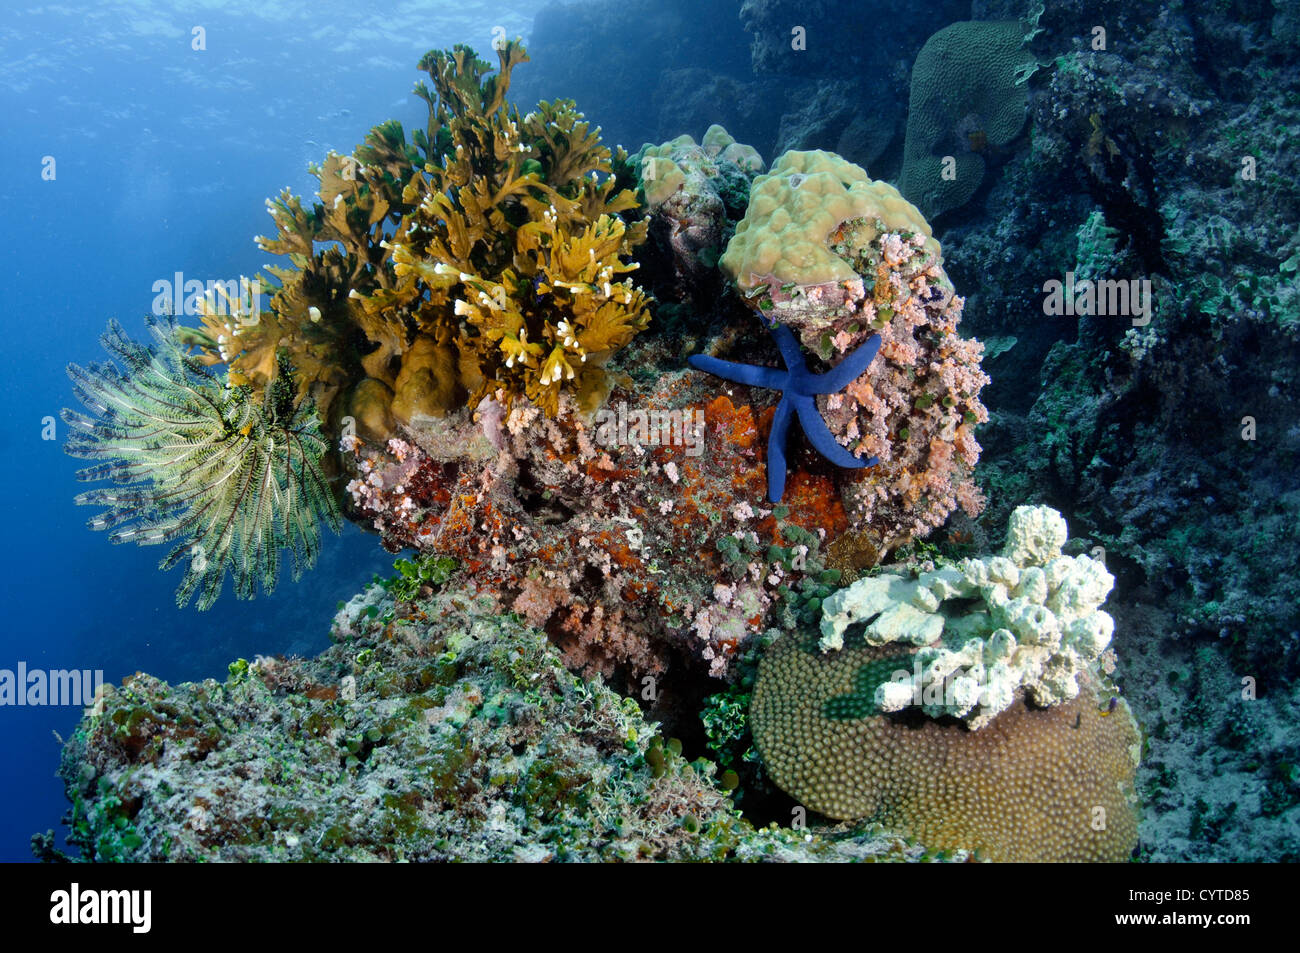 Exuberant coral reef, Pohnpei, Federated States of Micronesia, North Pacific - Stock Image